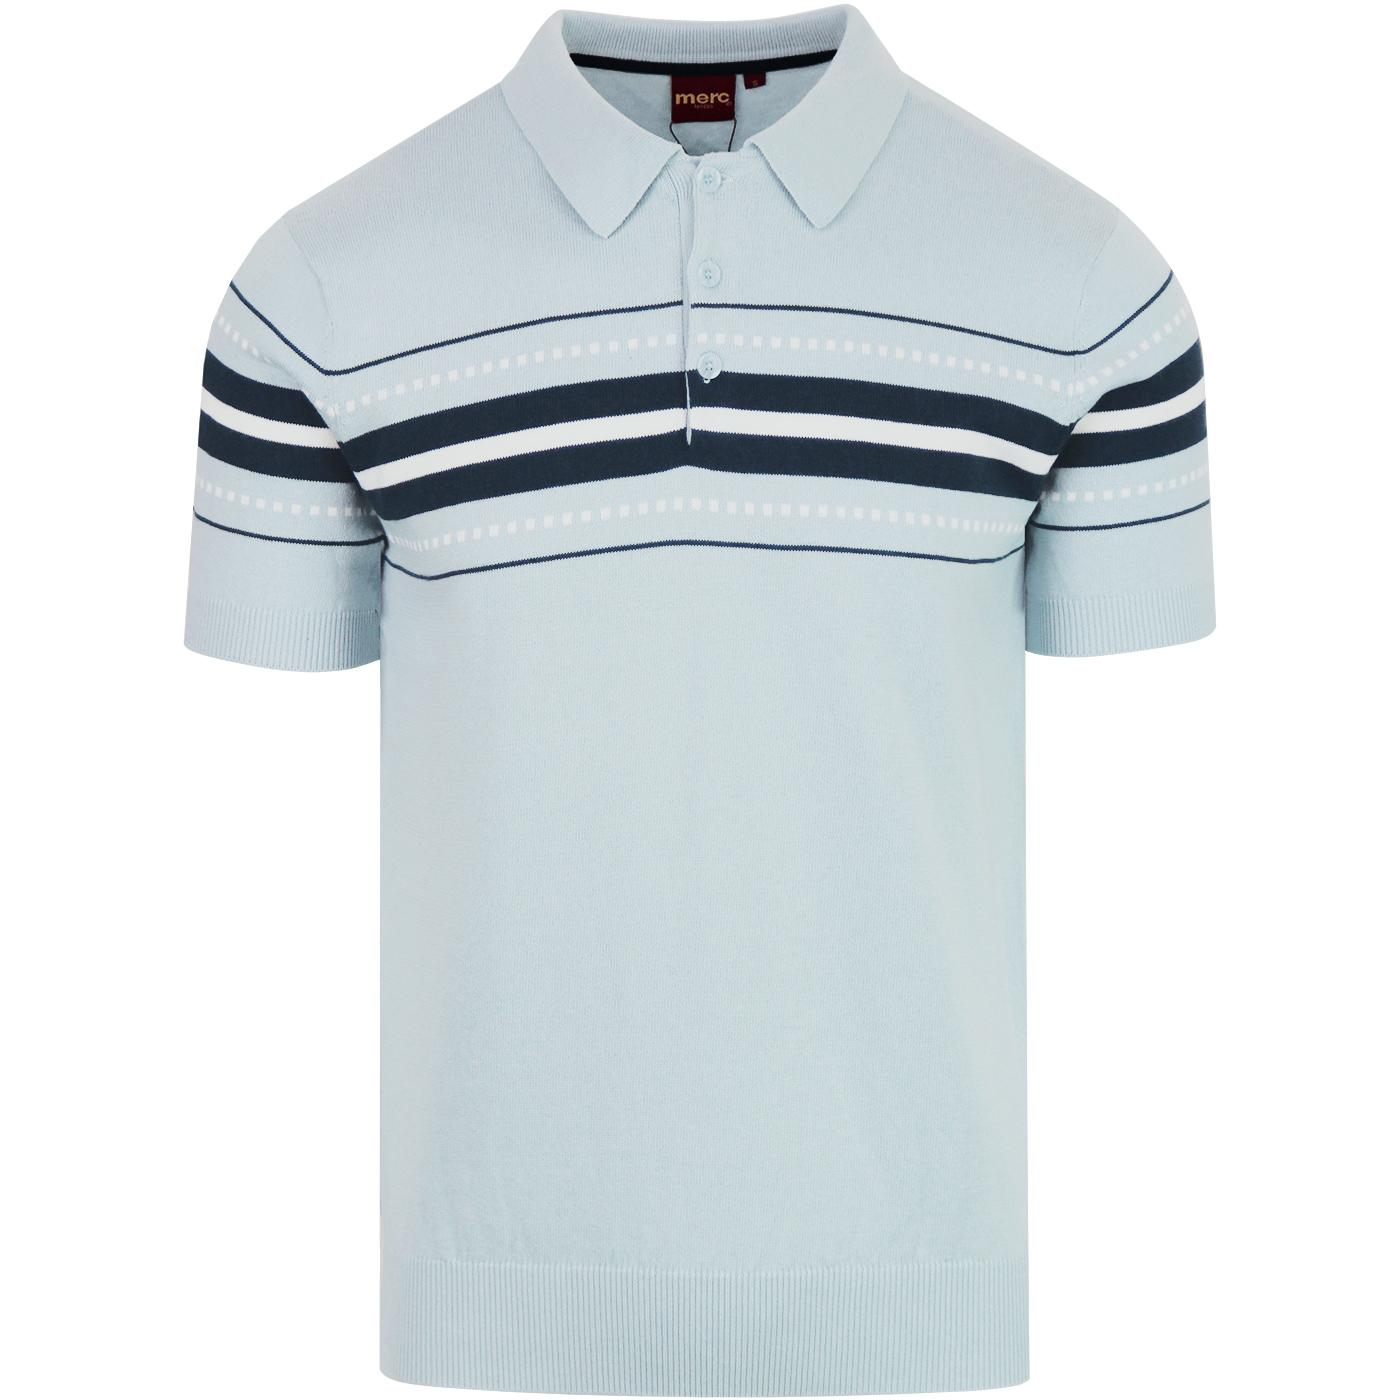 Tanner MERC 1960s Mod Chest Stripe Knit Polo (Sky)